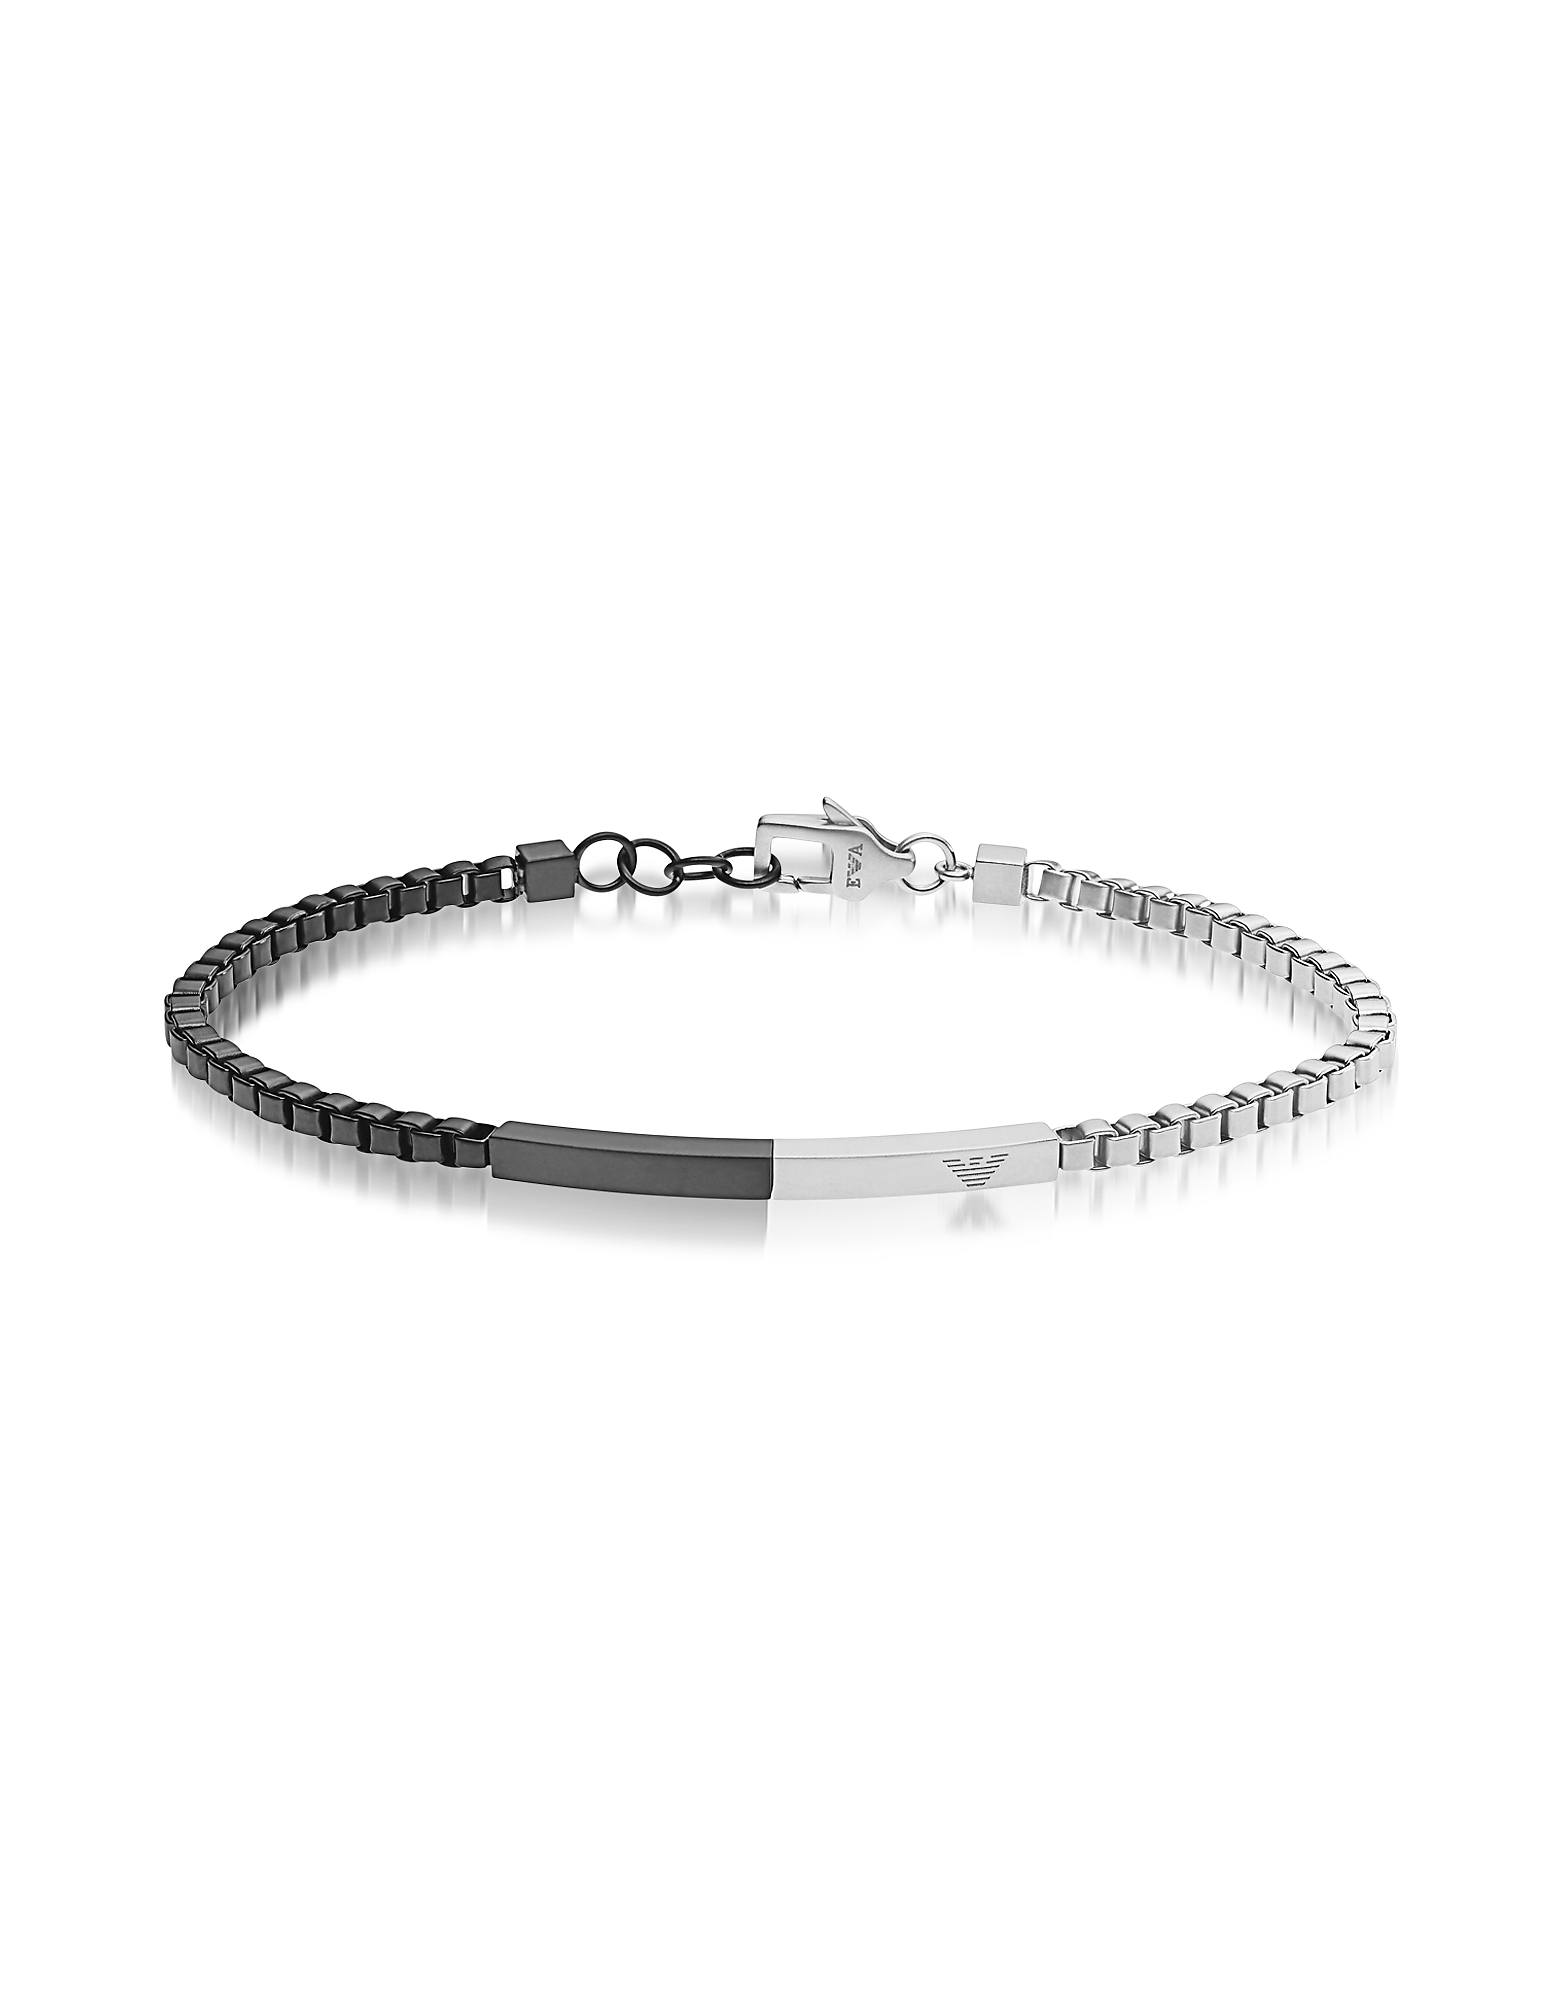 Heritage Two Tone Stainless Steel Men's Bracelet от Forzieri.com INT